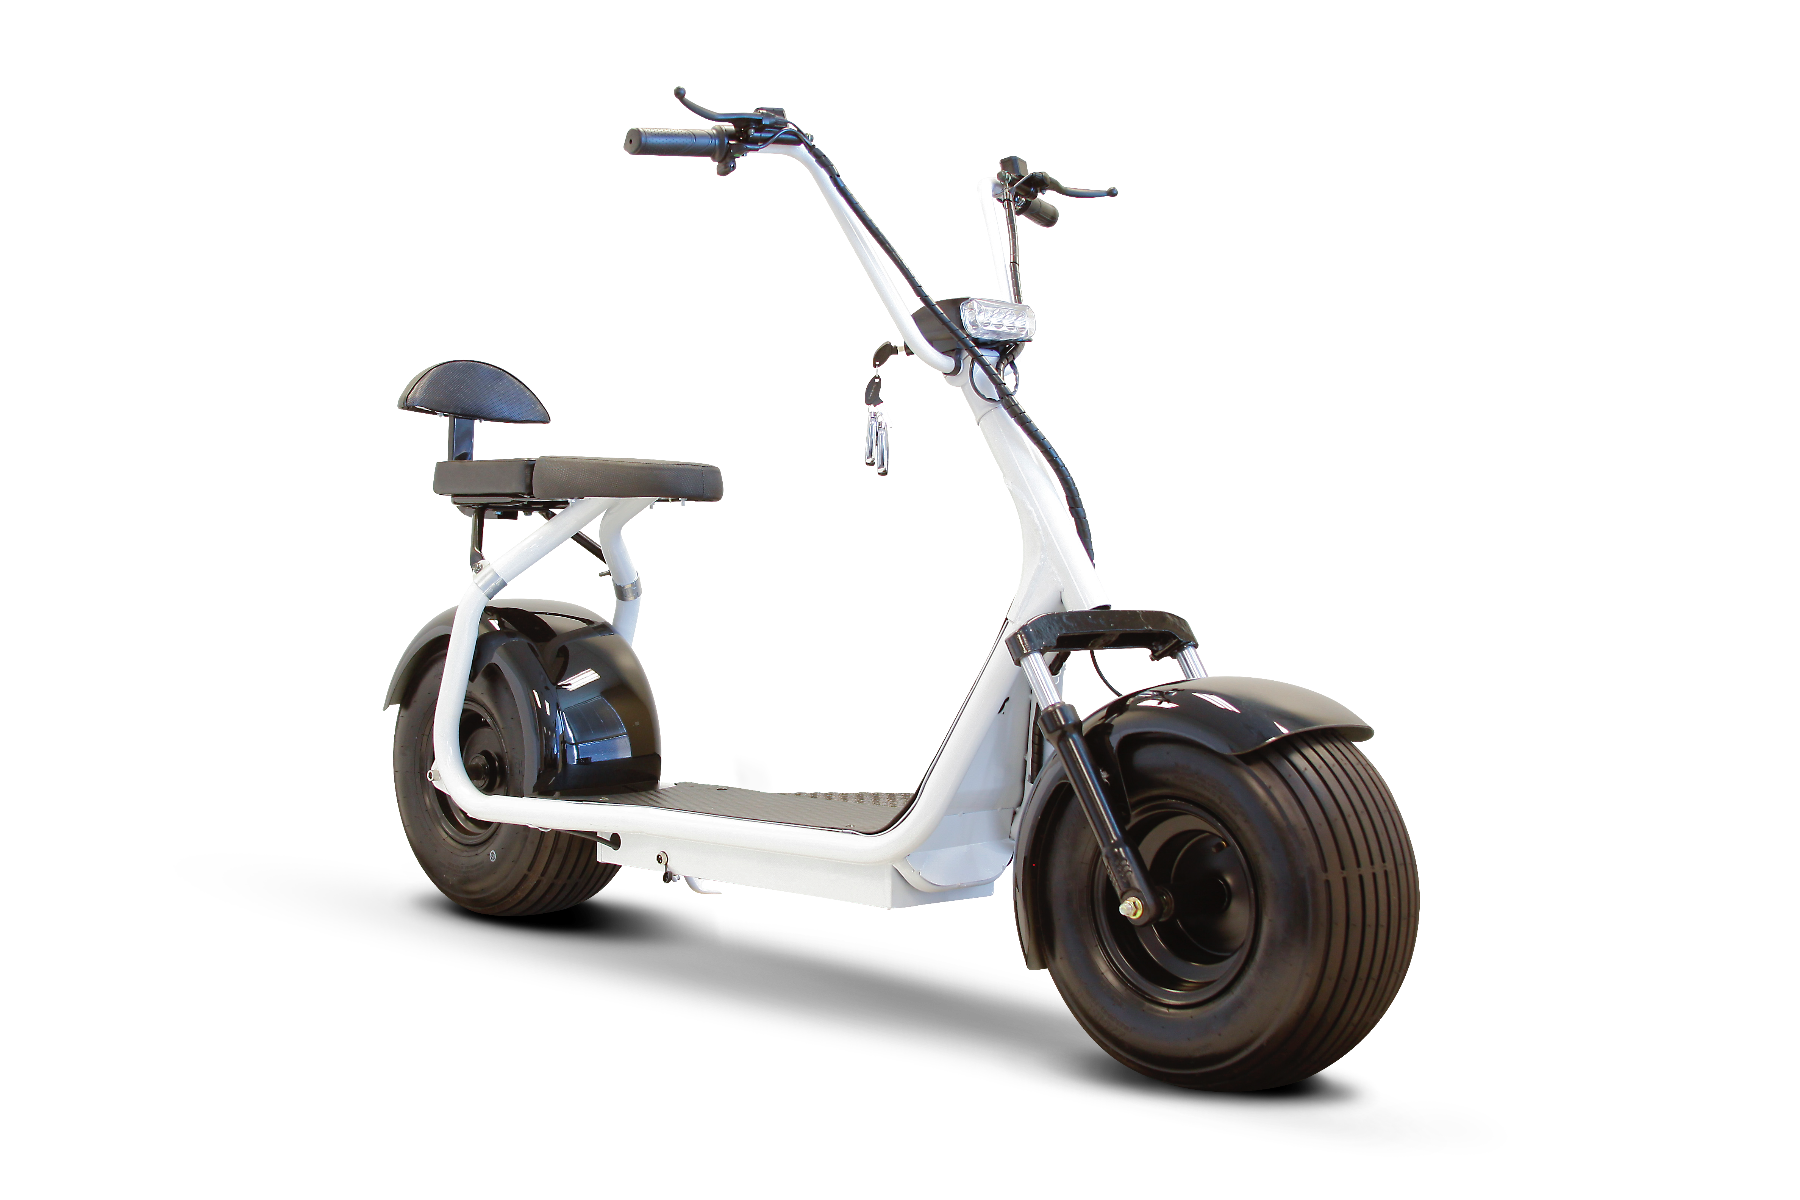 EWheels - EW-08 Fat Tire Electric Scooter